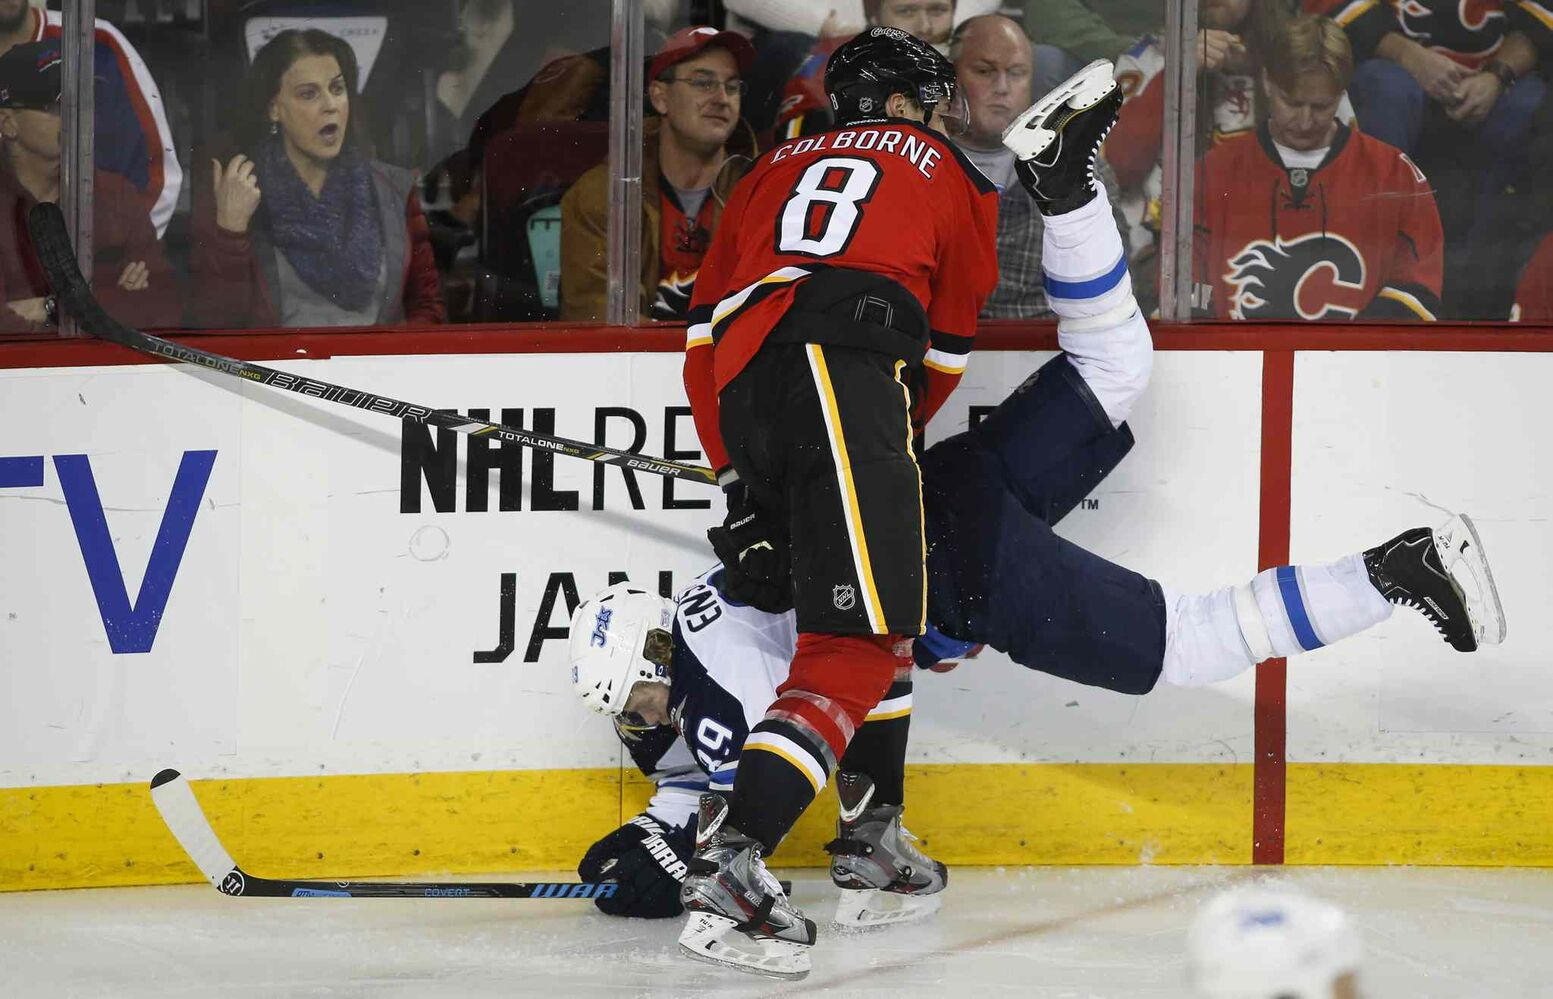 Winnipeg Jets' Tobias Enstrom, left, gets upended by Calgary Flames' Joe Colborne during third period in Calgary Thursday.